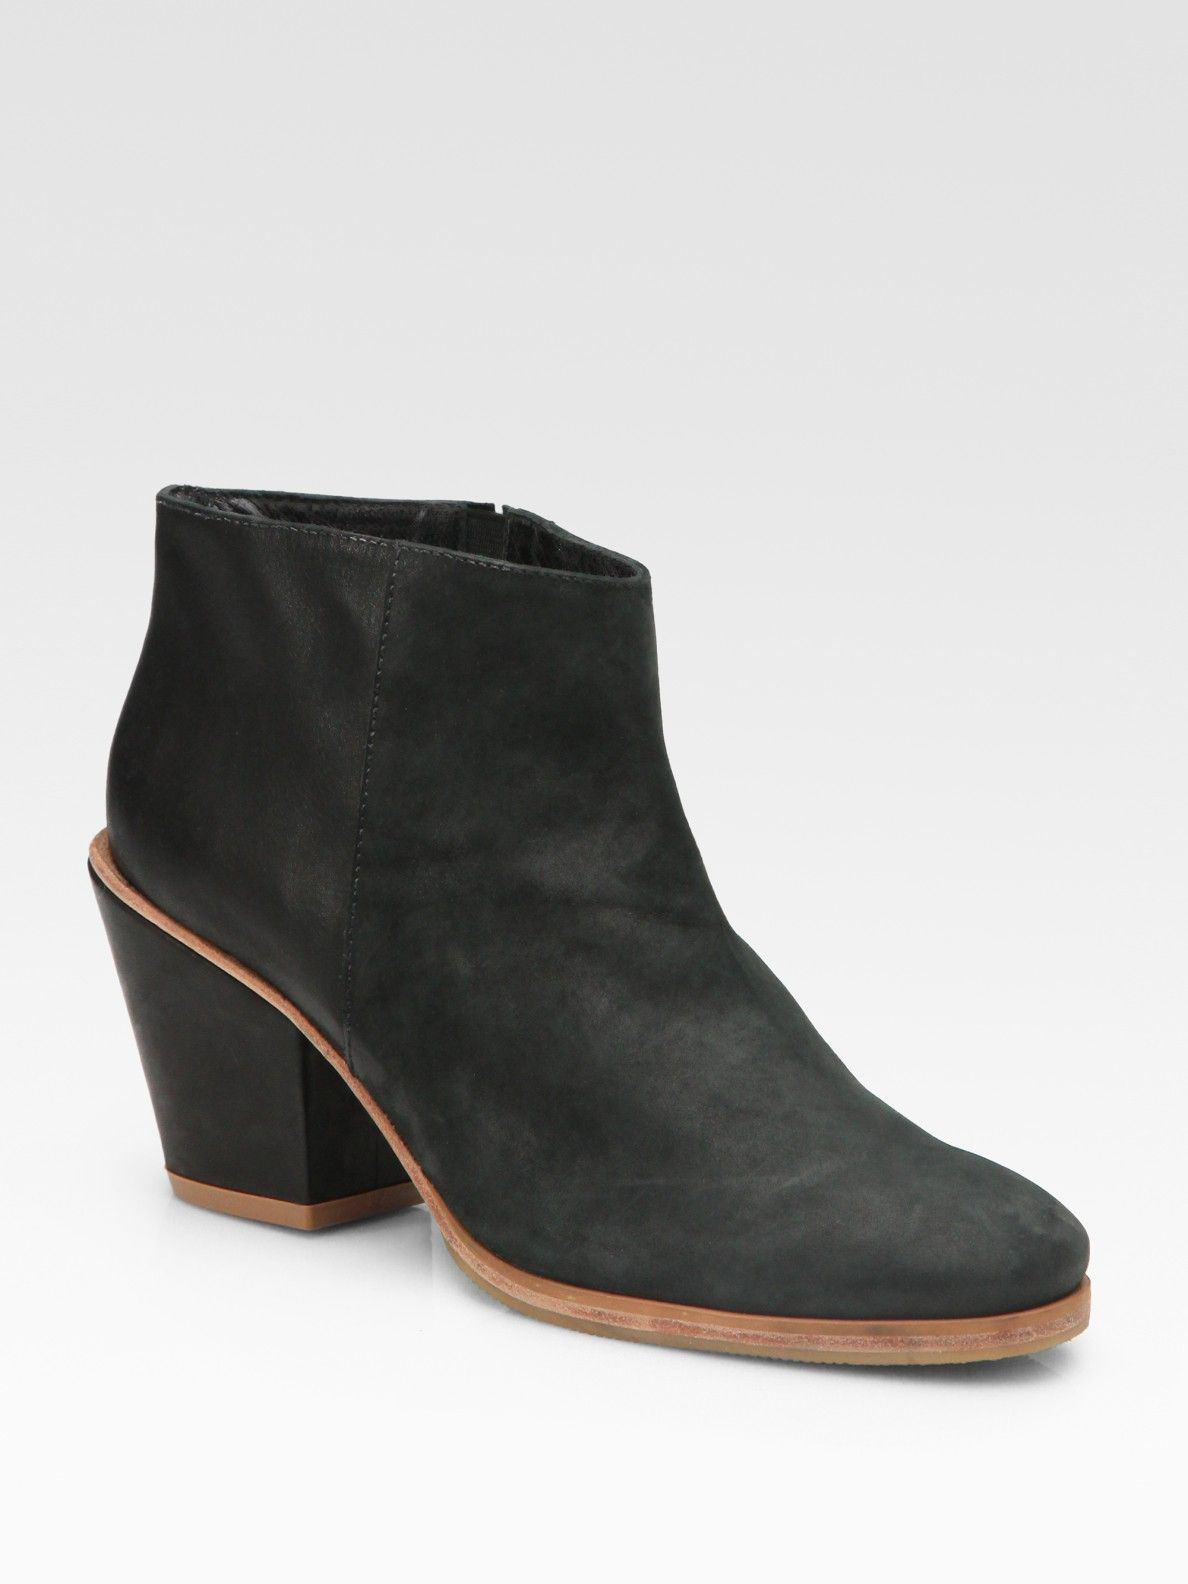 RACHEL COMEY Leather Ankle Boots ukmwT3Wtg